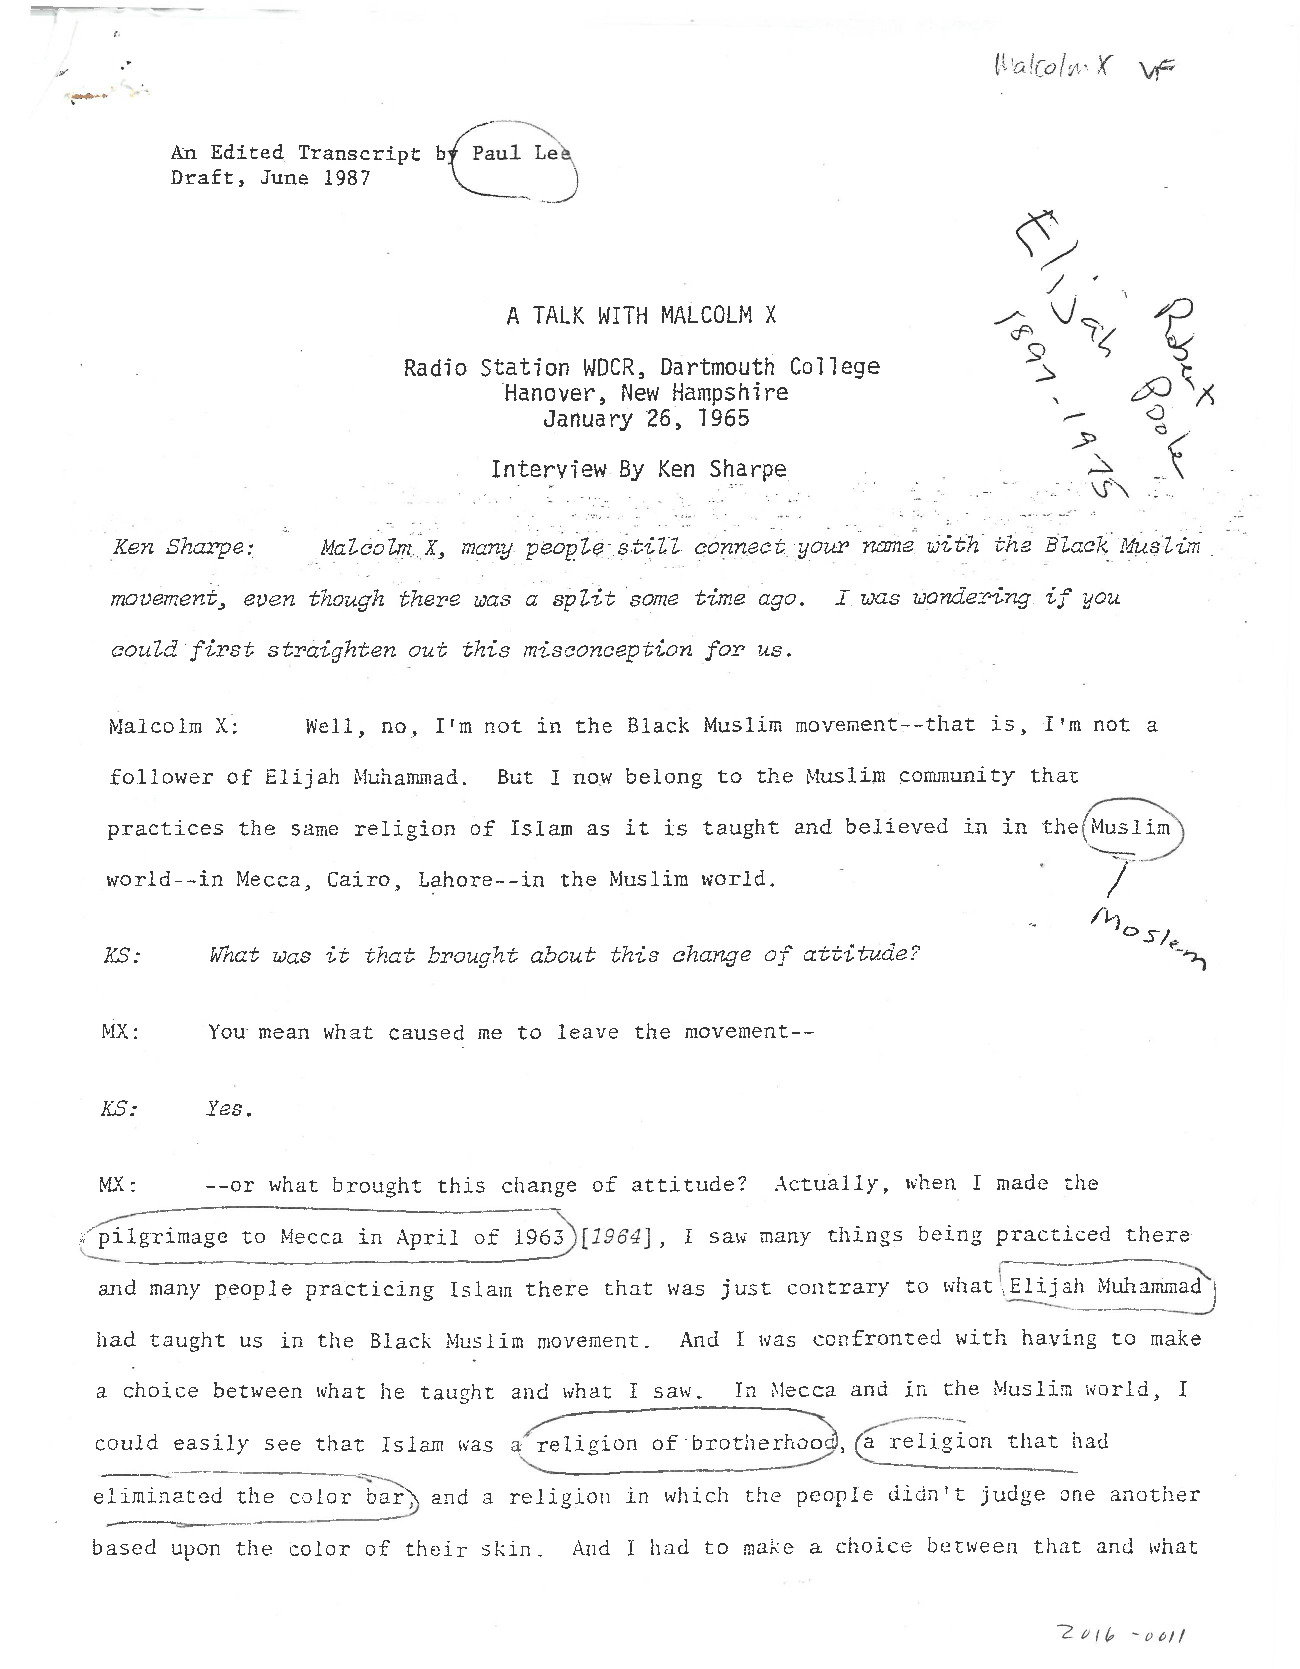 An edited transcript of Ken Sharpe's WDCR interview with Malcolm X on January 26, 1965.